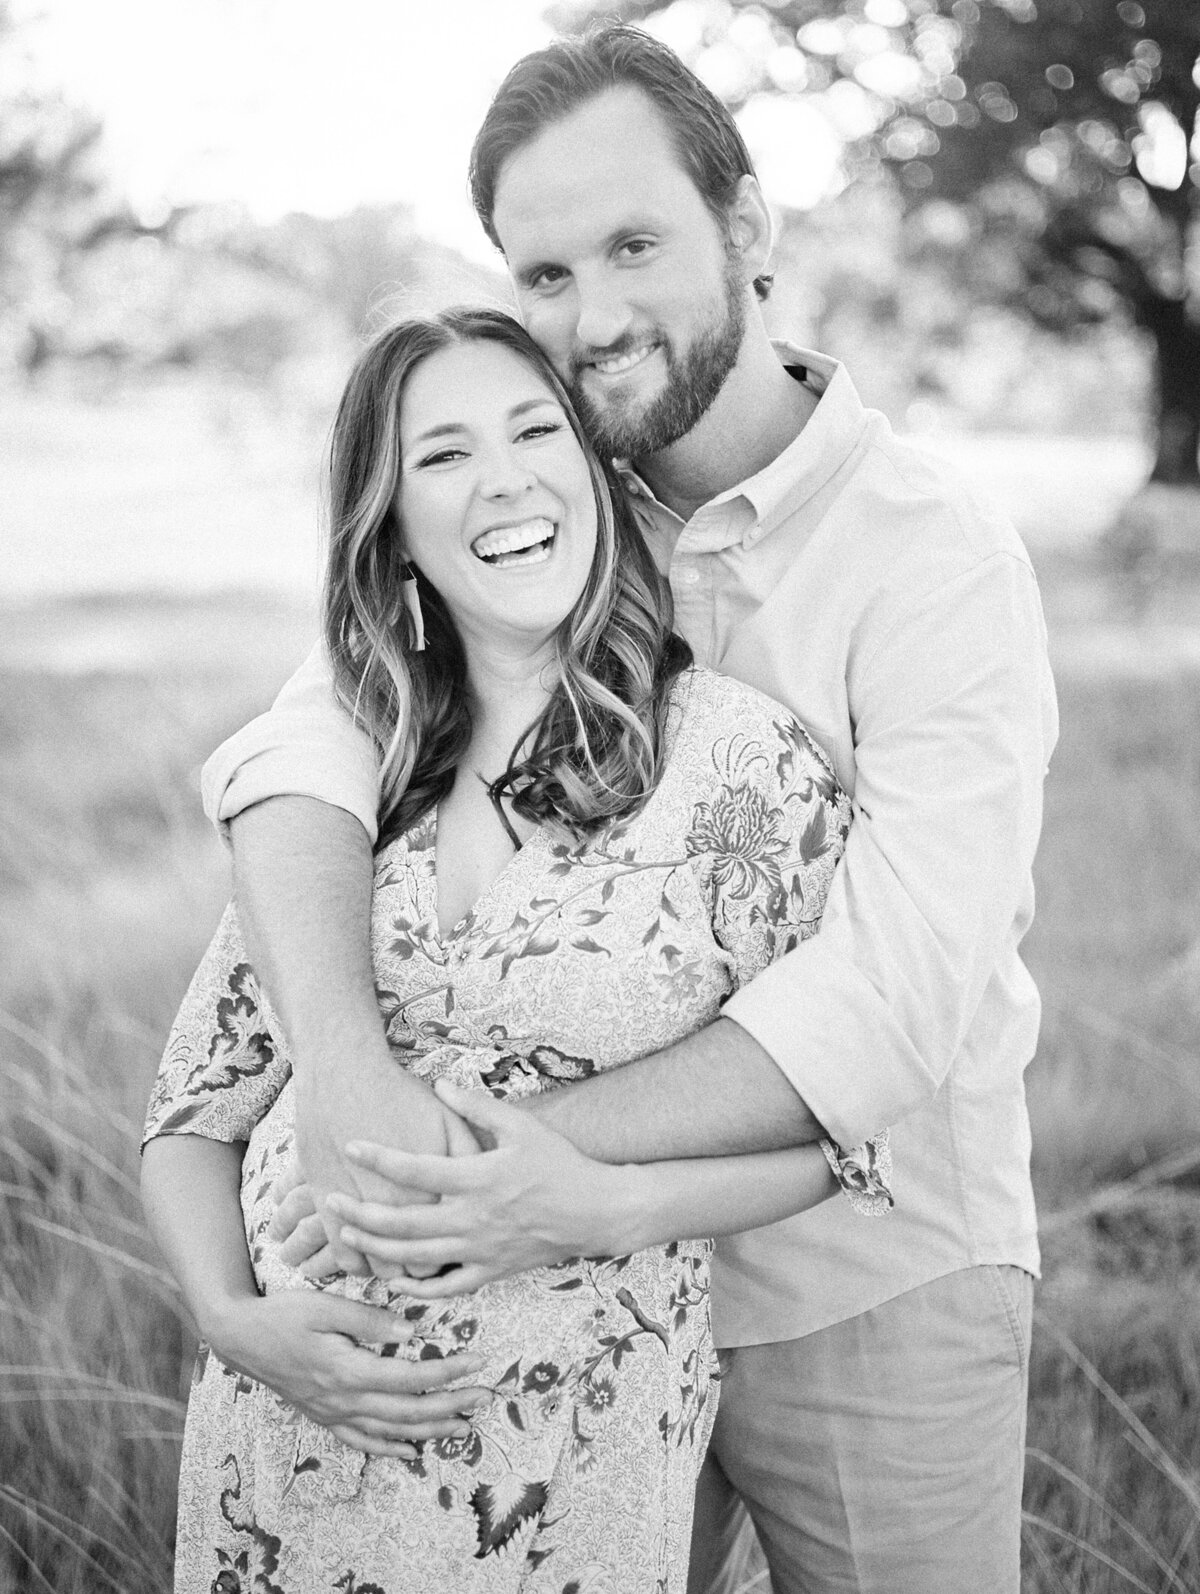 Maternity-Portraits-Houston-Summer-Taccolini-Melanie-Julian-Photography-77